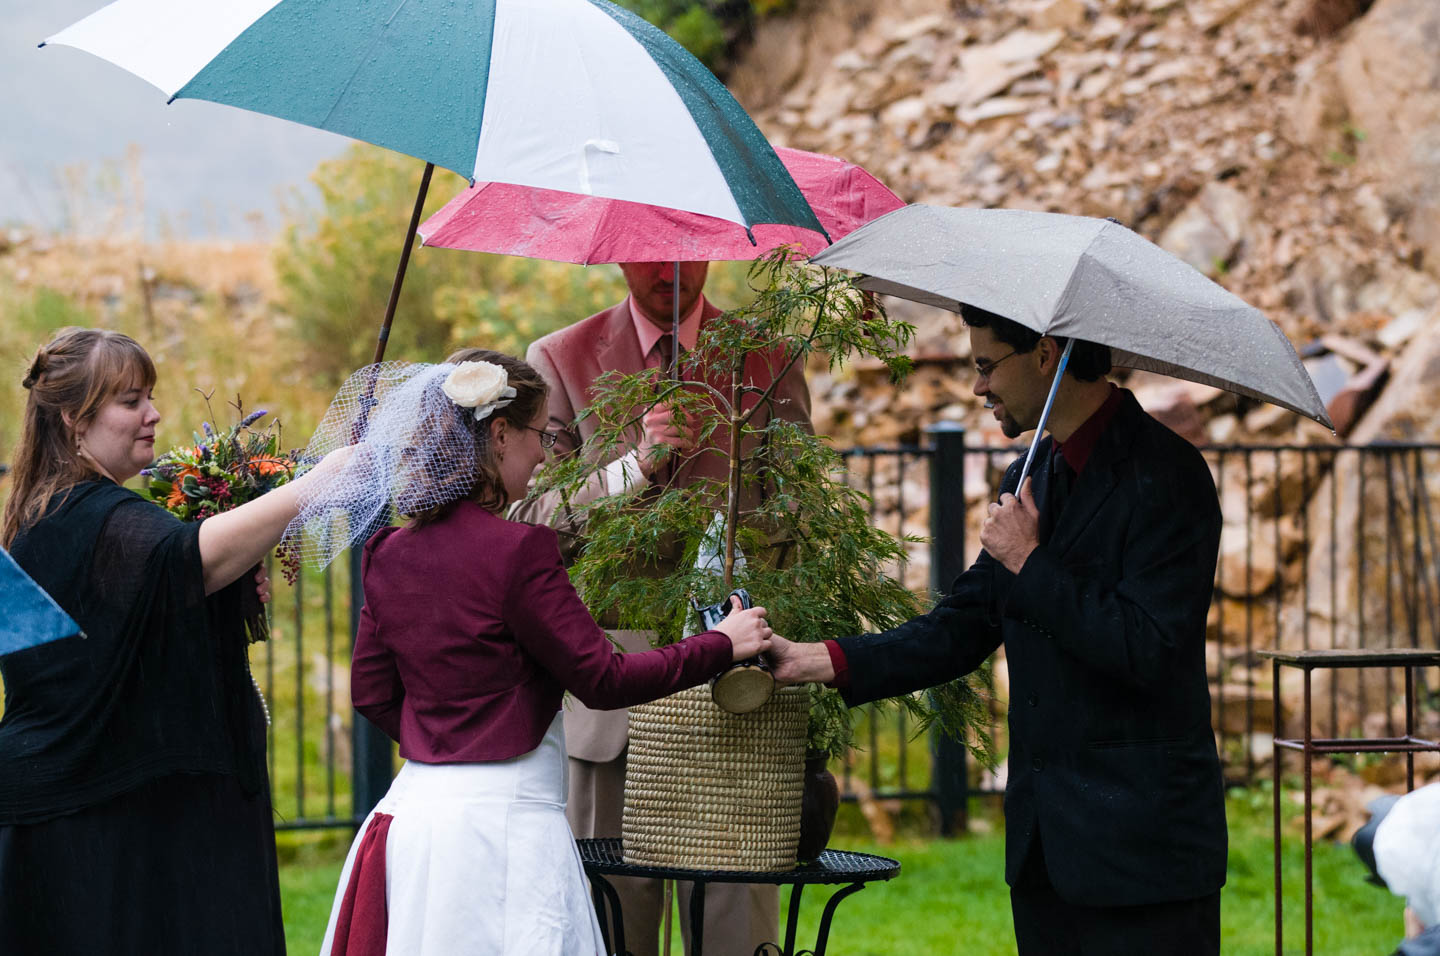 Bride and groom plant a tree in the rain